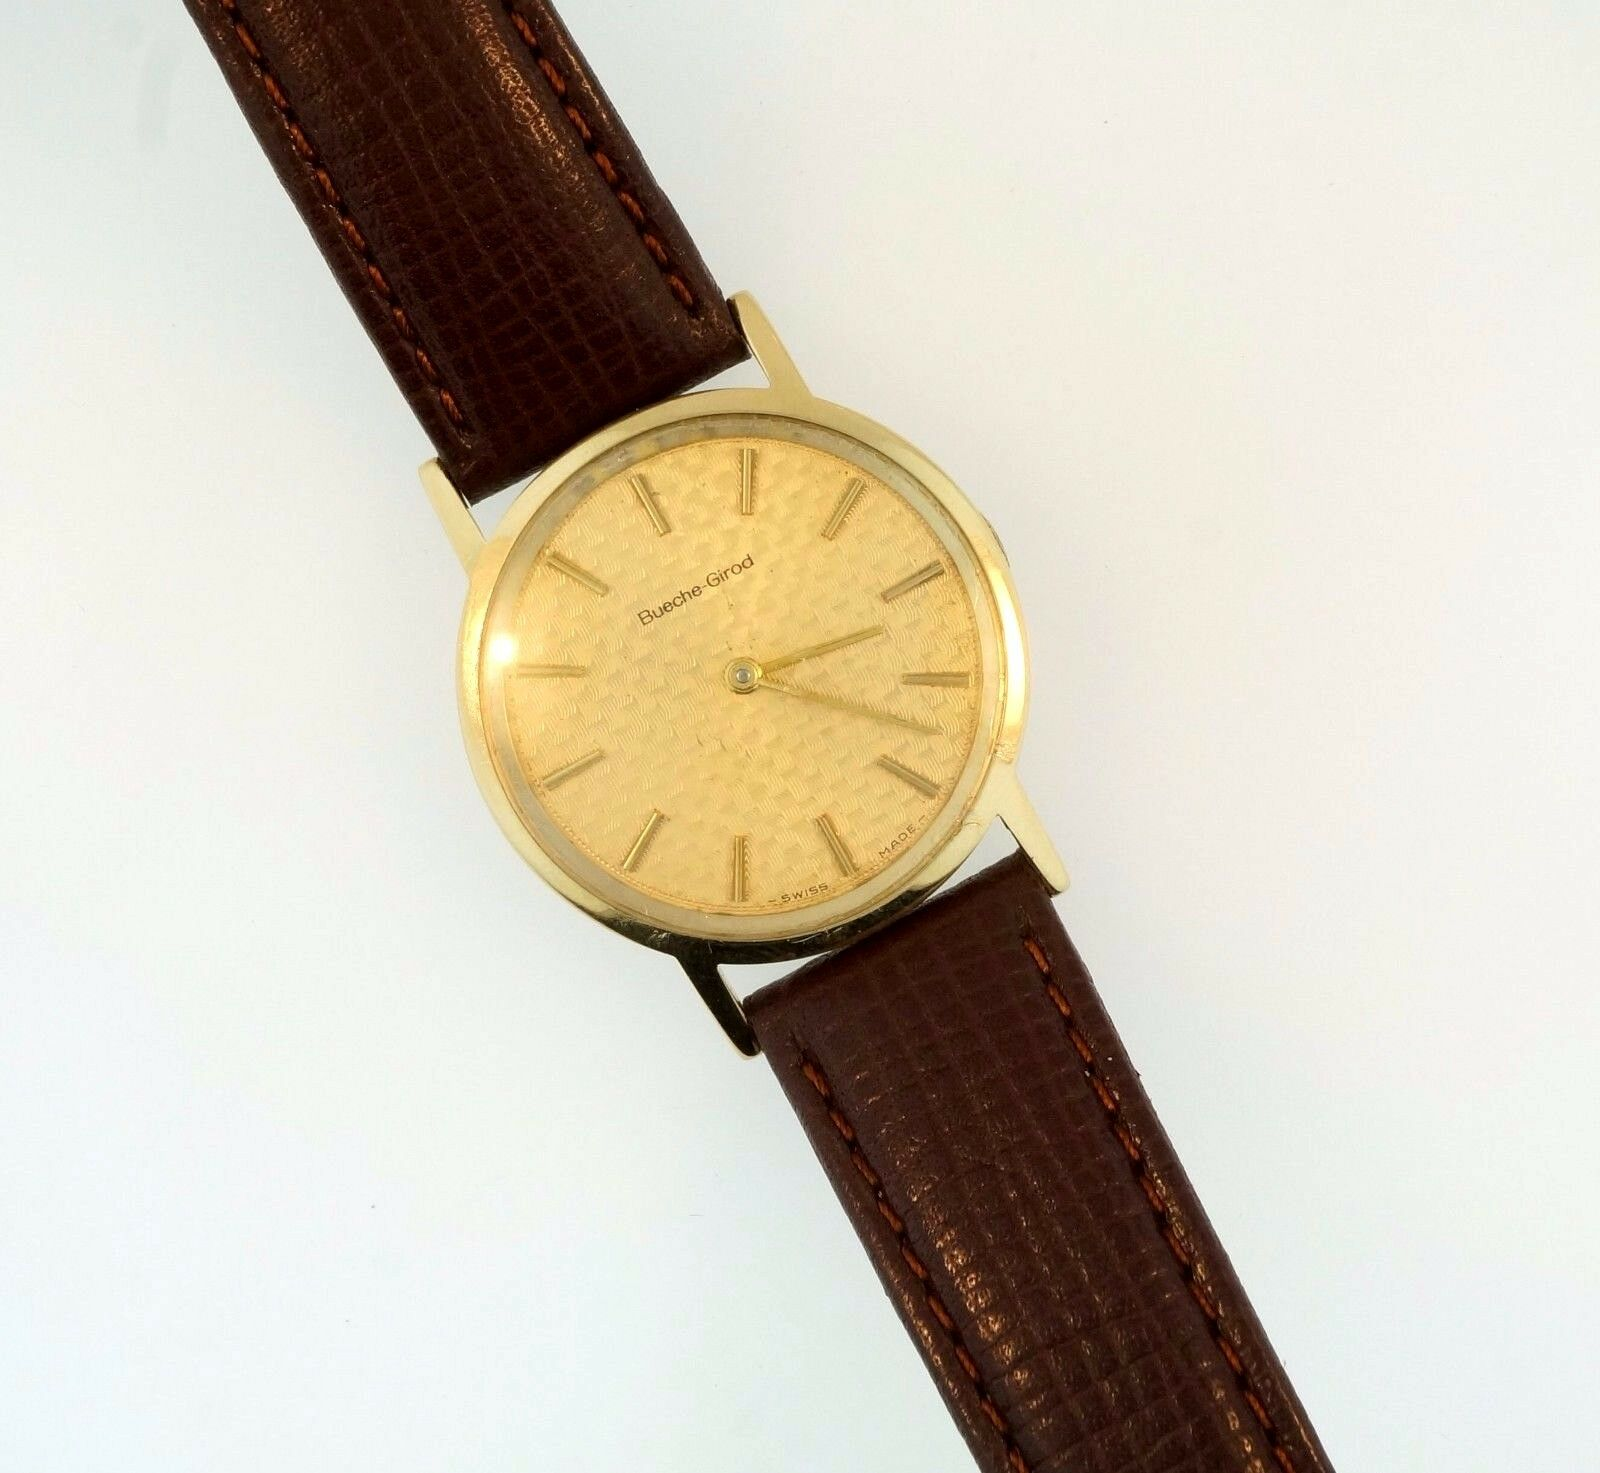 movado watch vintage yellow ladies shop investments watches bueche gold girod archives tangible